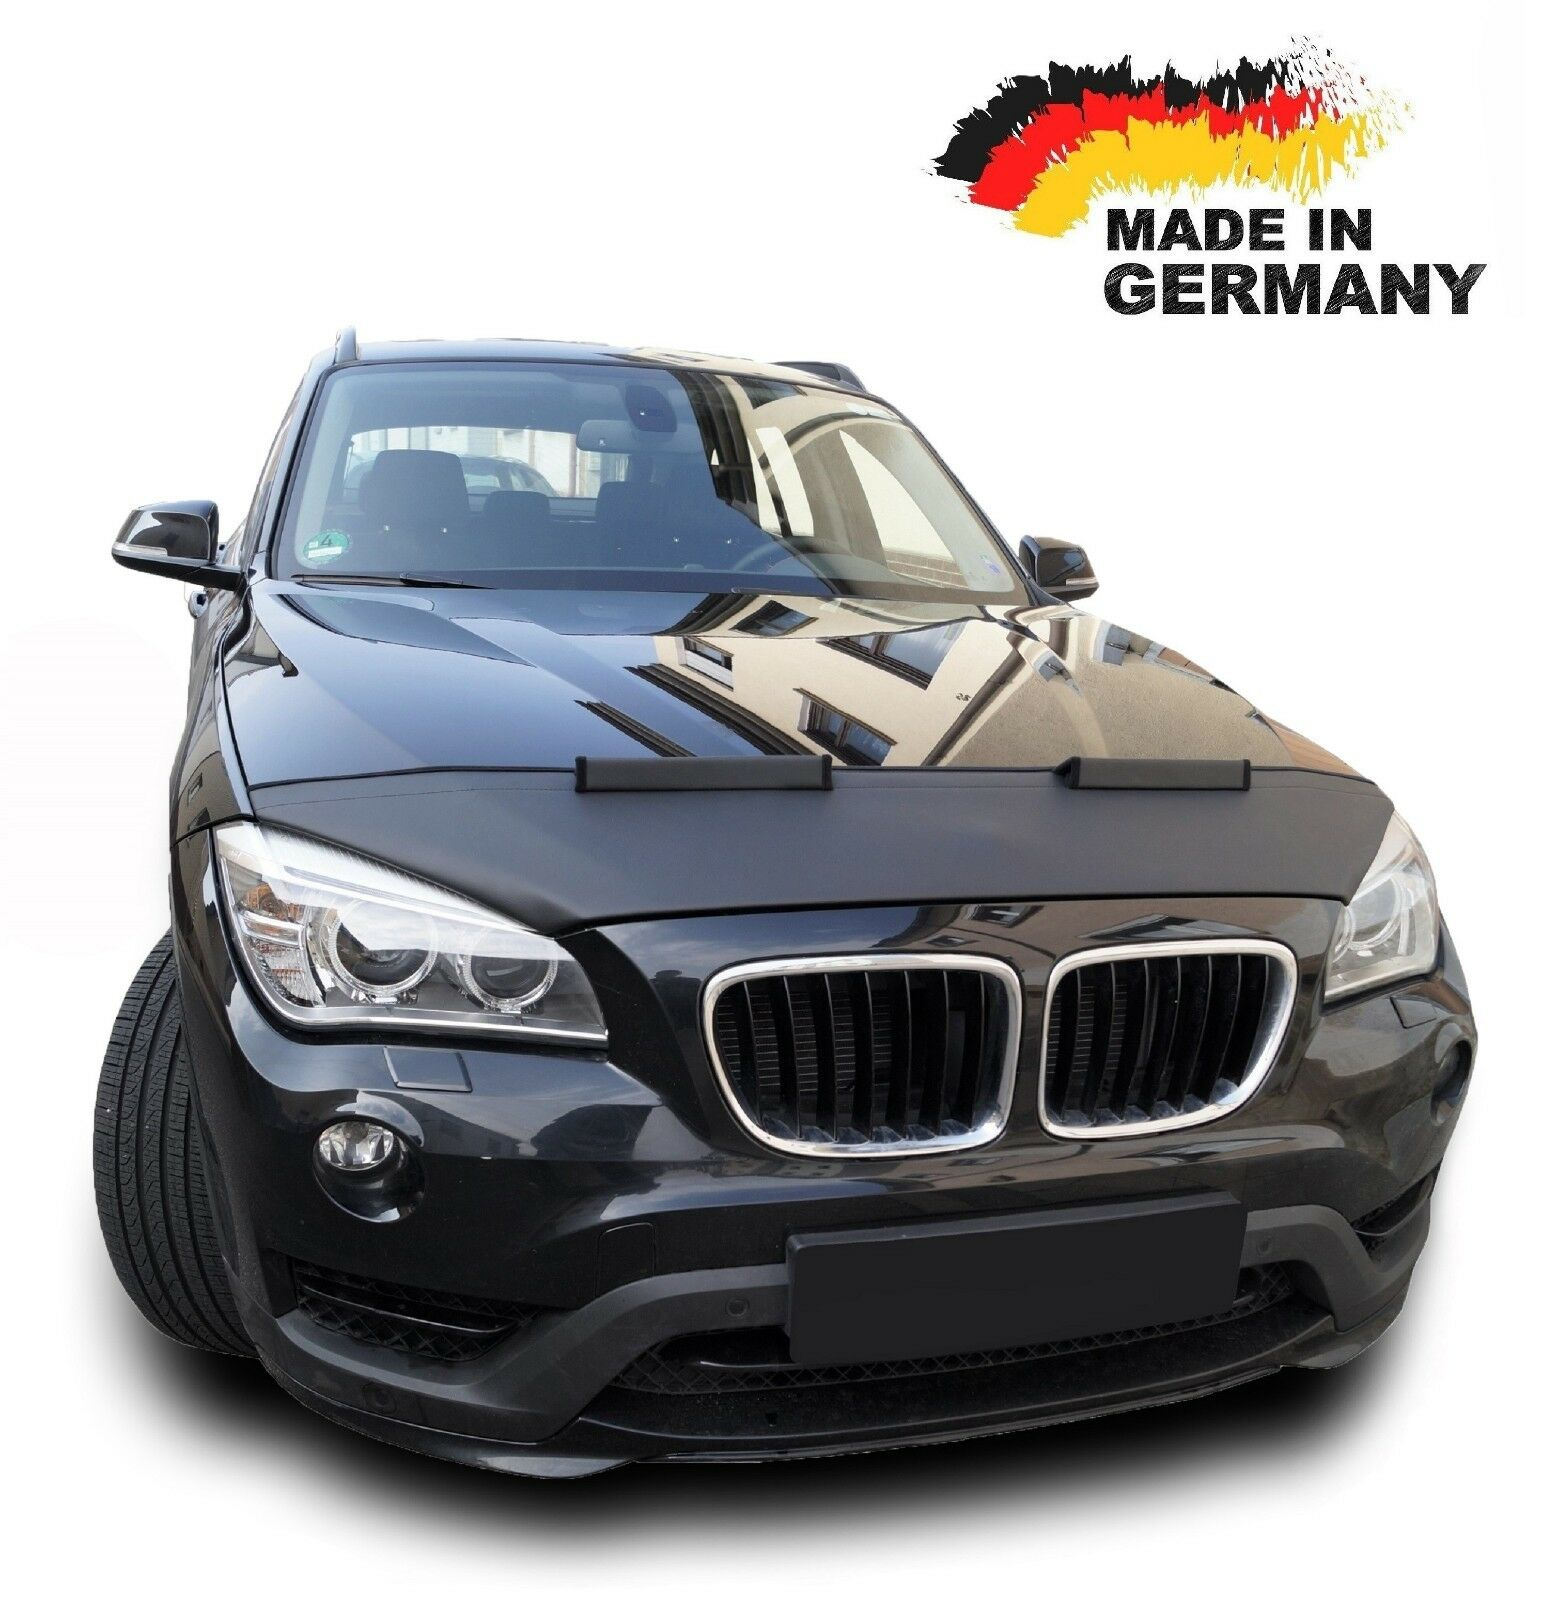 Hood Bra BMW X1 E84 Car Mask Bonnet Cover Front End Stone protection NEW